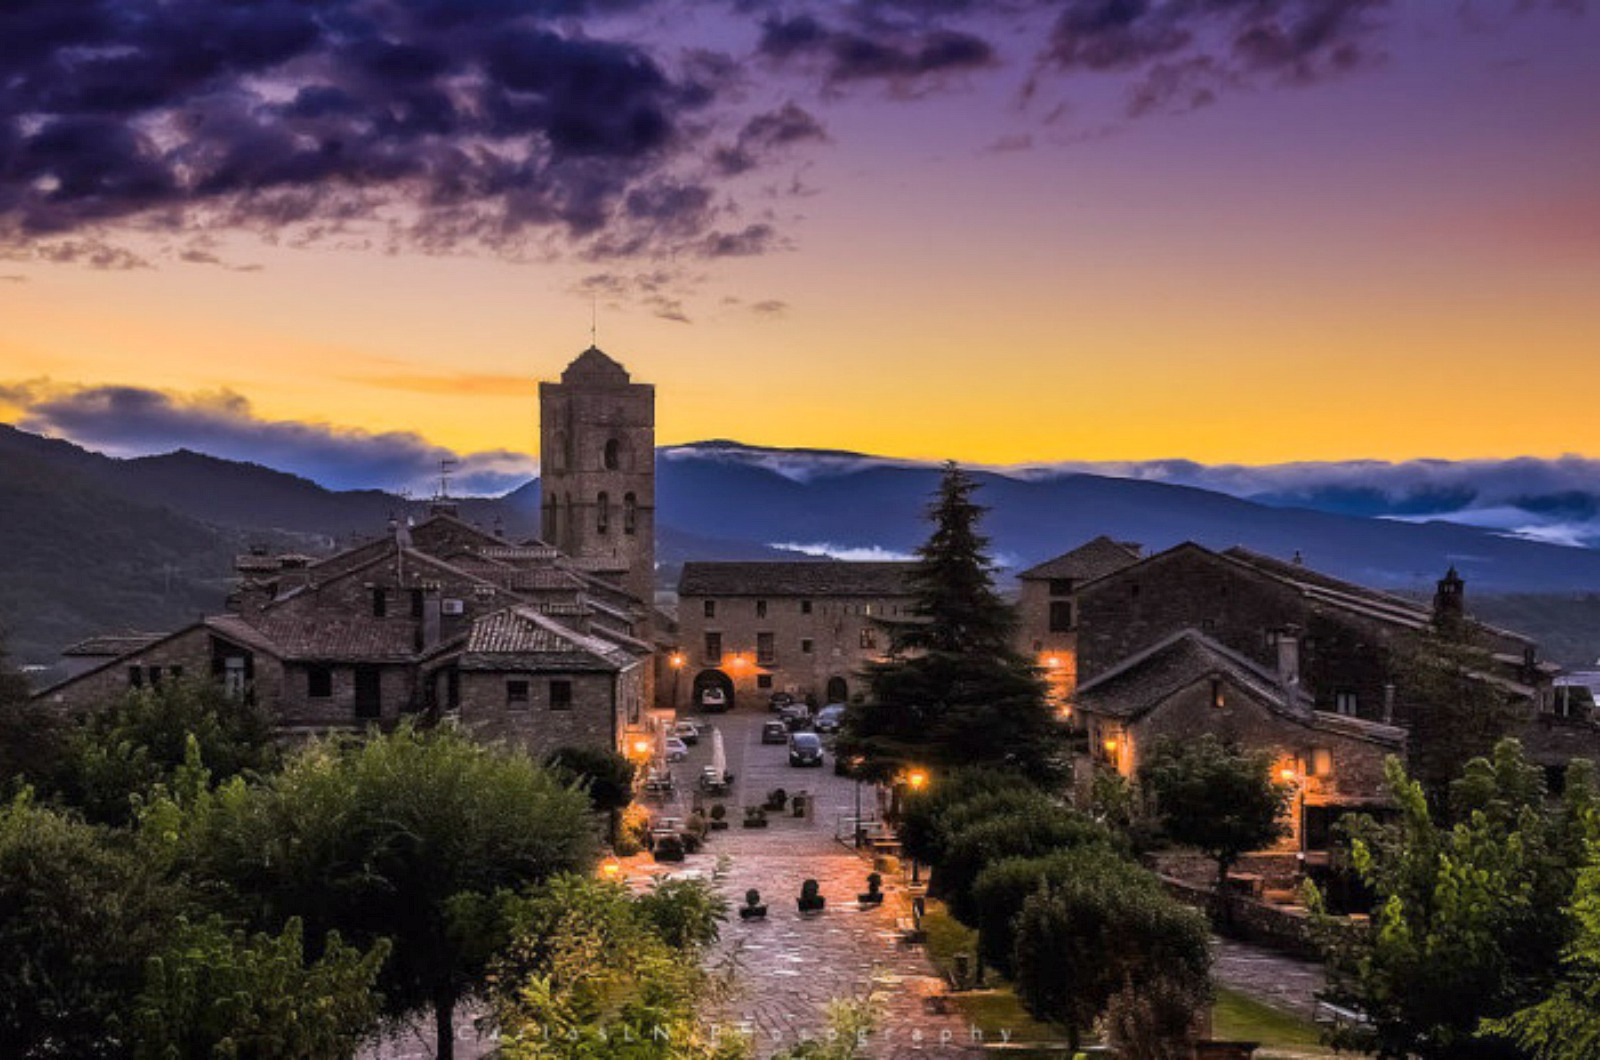 Thje medieval town of Ainsa in the Spanish Pyrenees seen from the fortress ramparts on our Cultural Holiday Spain